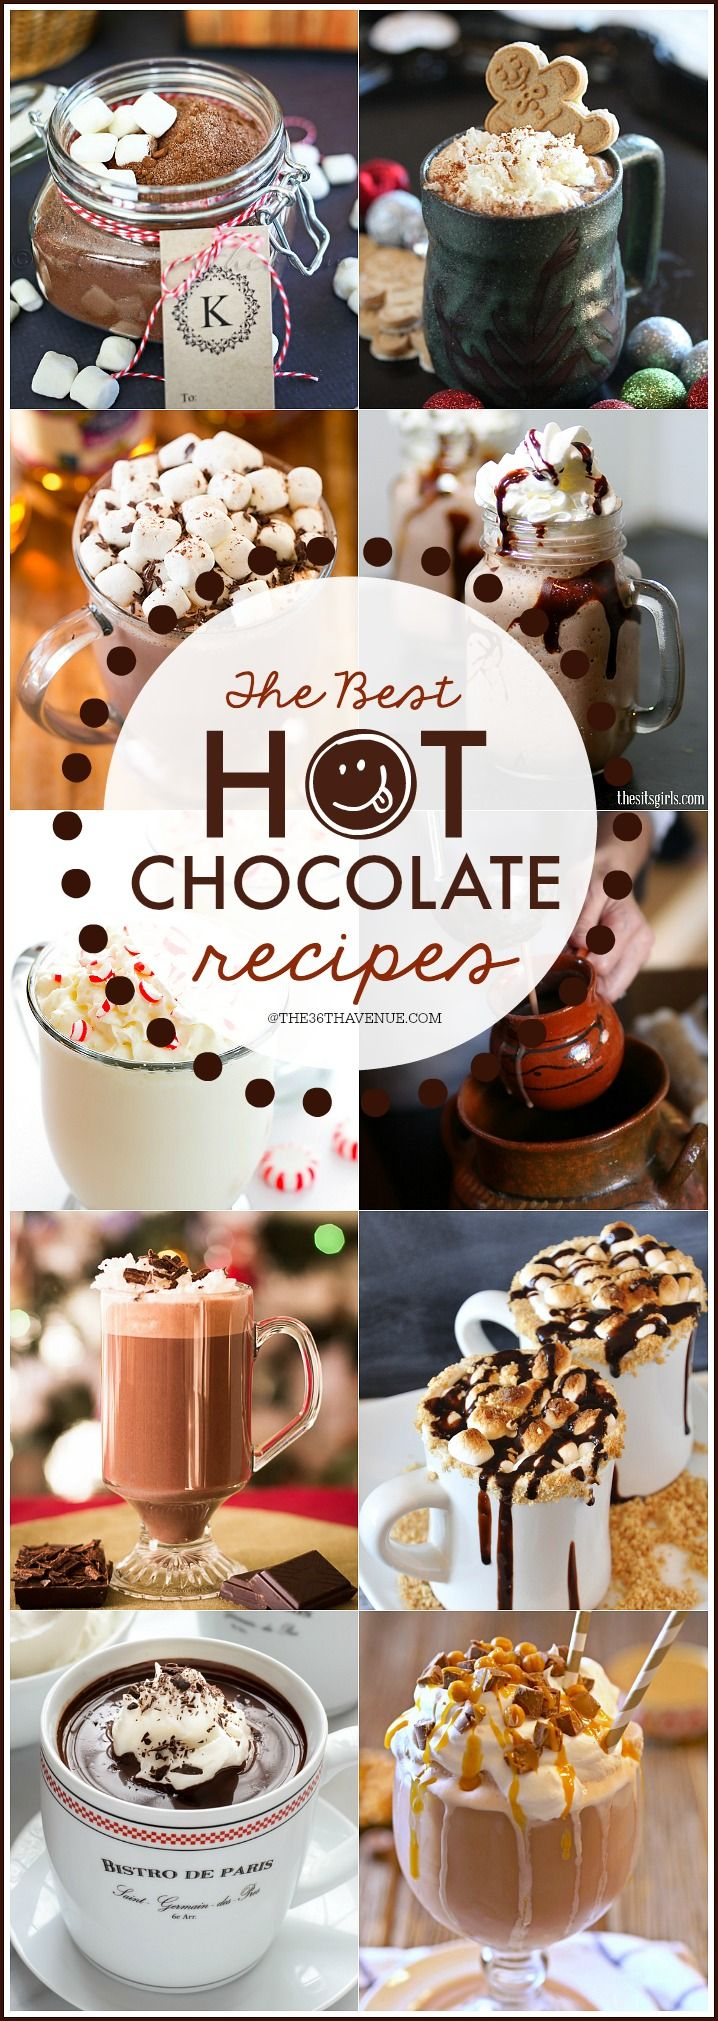 The Best Hot Chocolate Recipes EVER! PIN IT NOW and make them later!